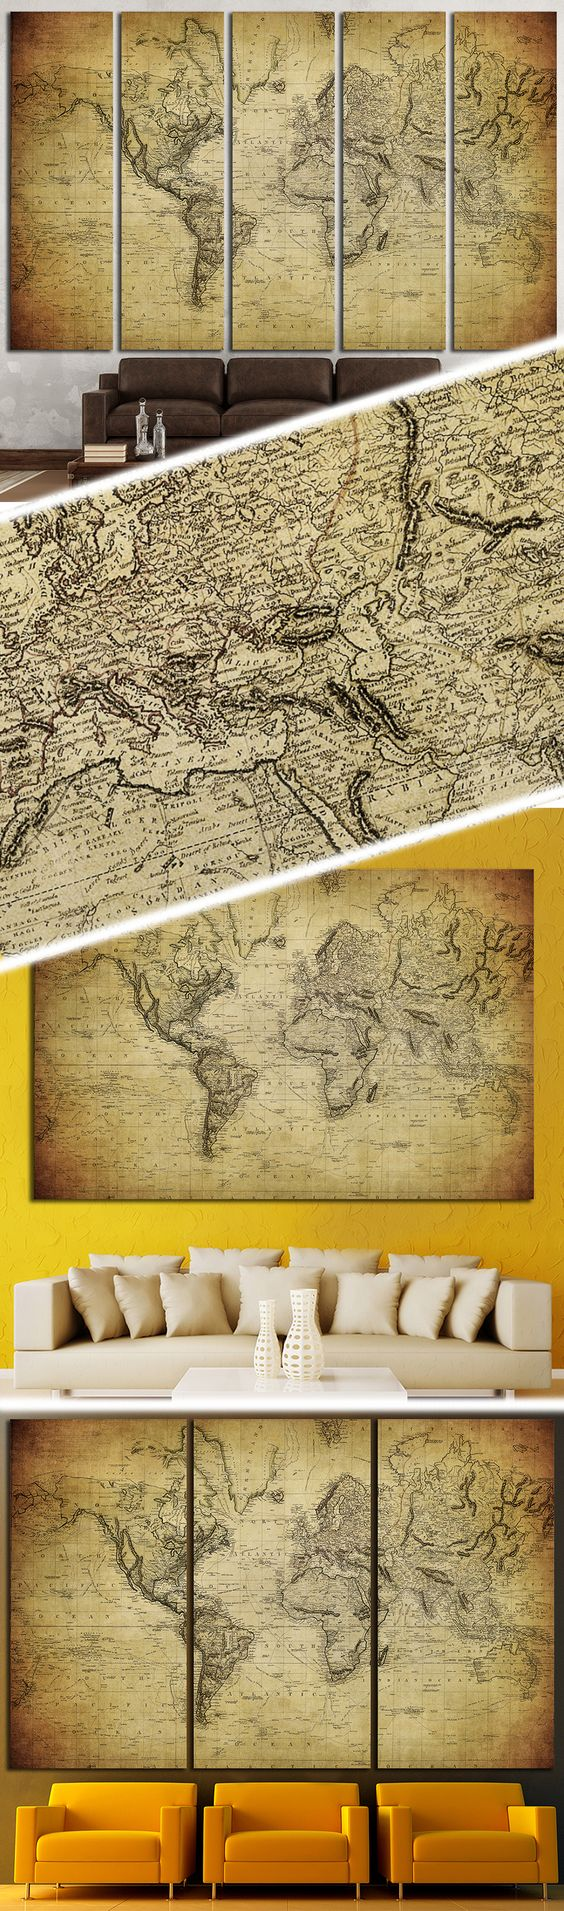 Vintage map of the world 1324 office walls wall decorations creative world map canvas prints wall art for large home or office wall decoration sale gumiabroncs Gallery